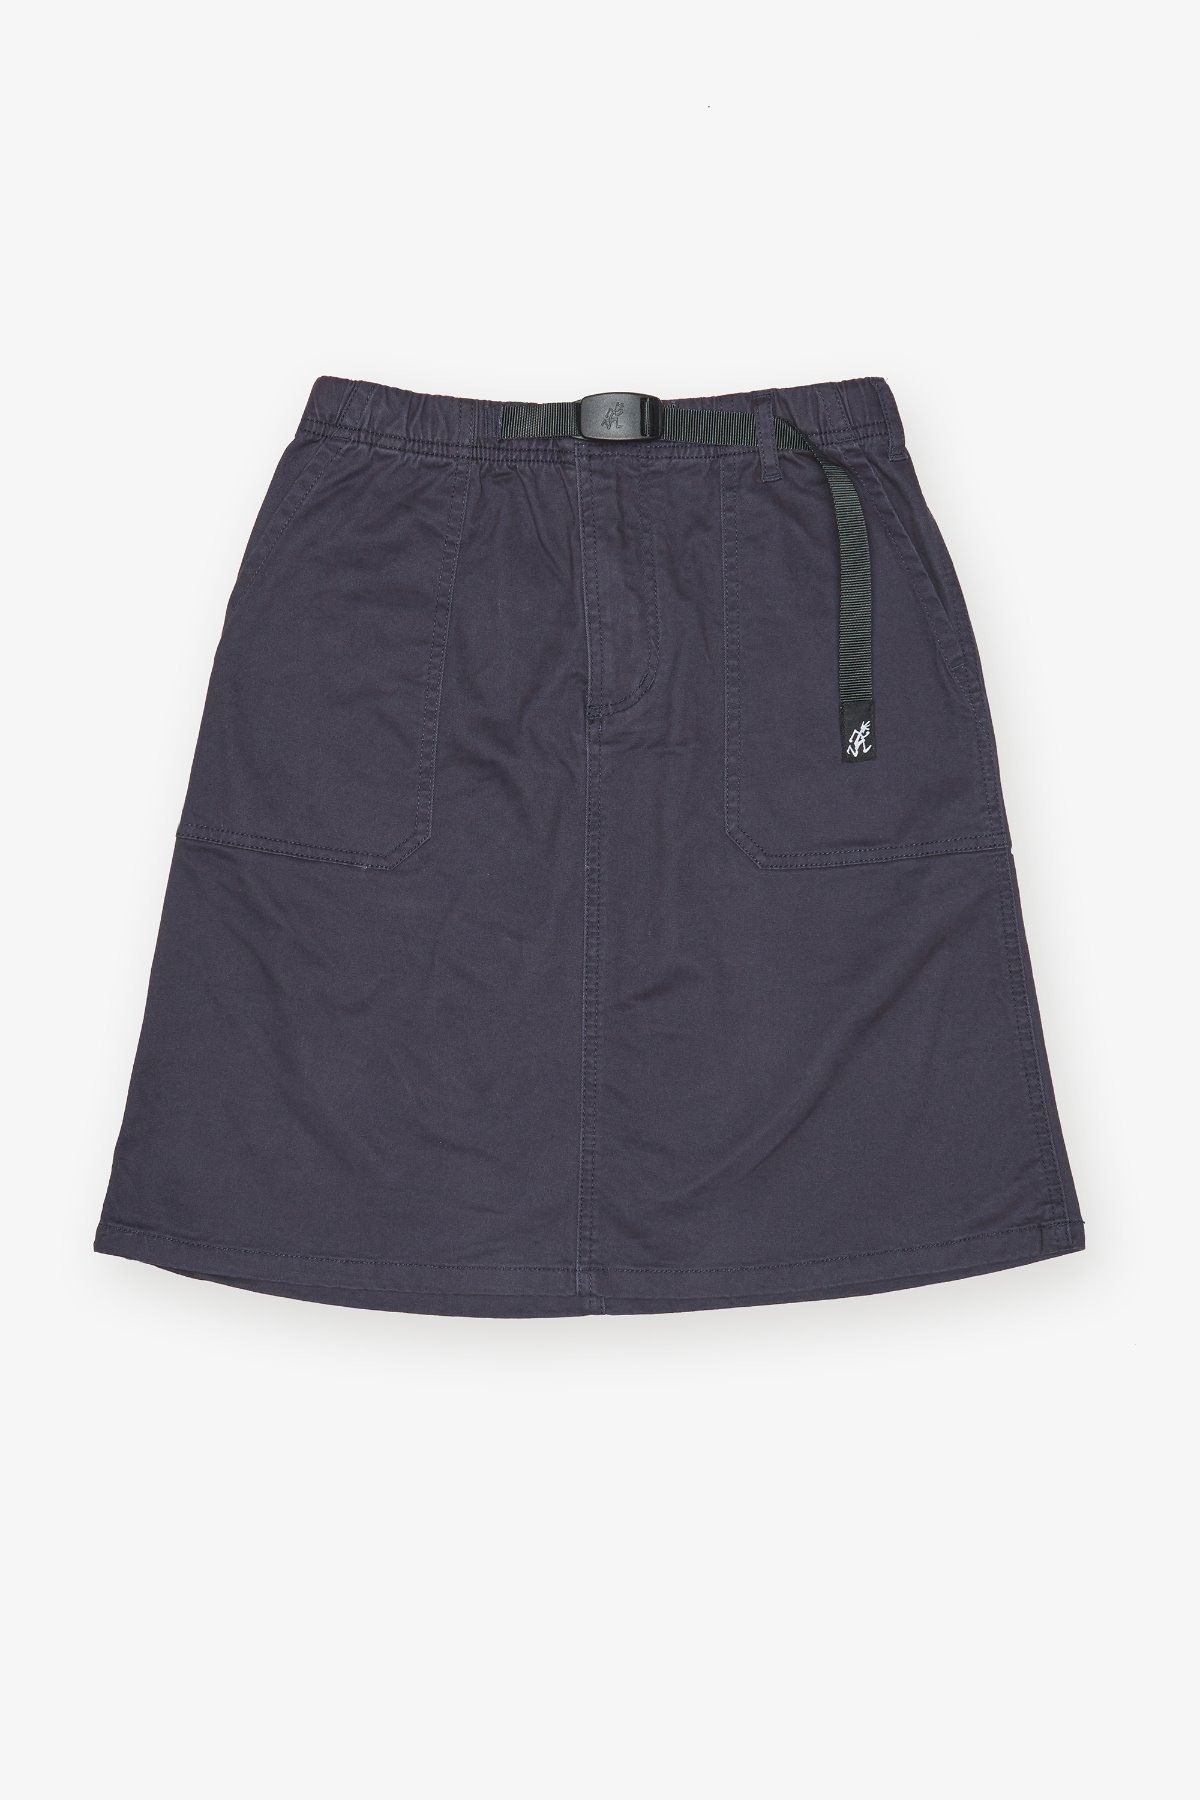 MIDDLE CUT SKIRT DOUBLE NAVY